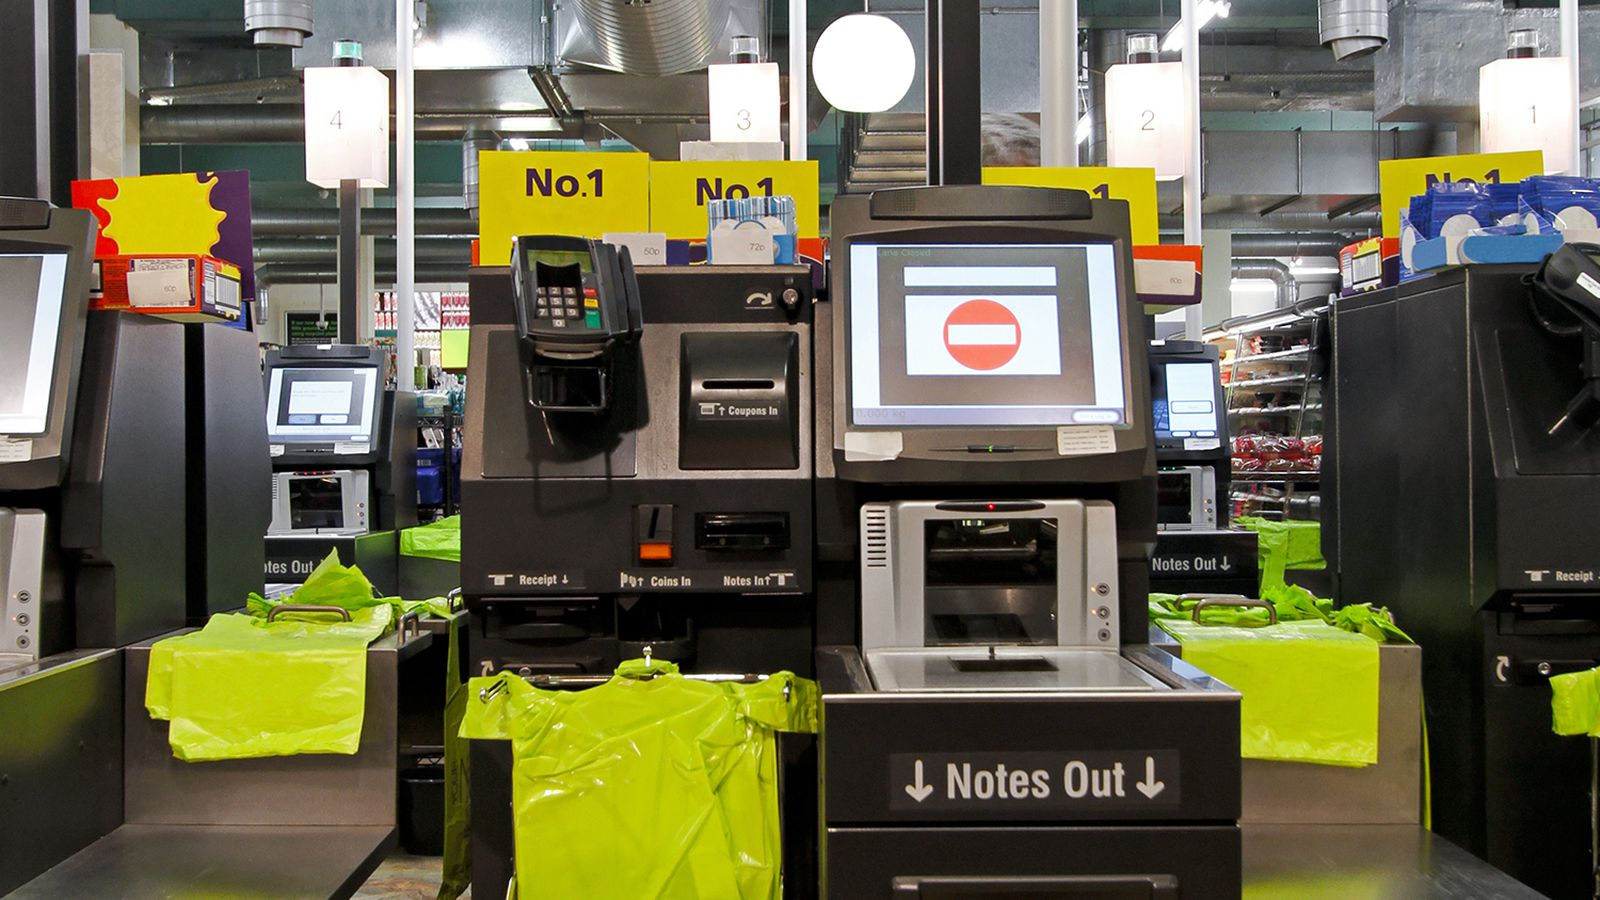 People in the self-checkout line are terrible  Here's how to make